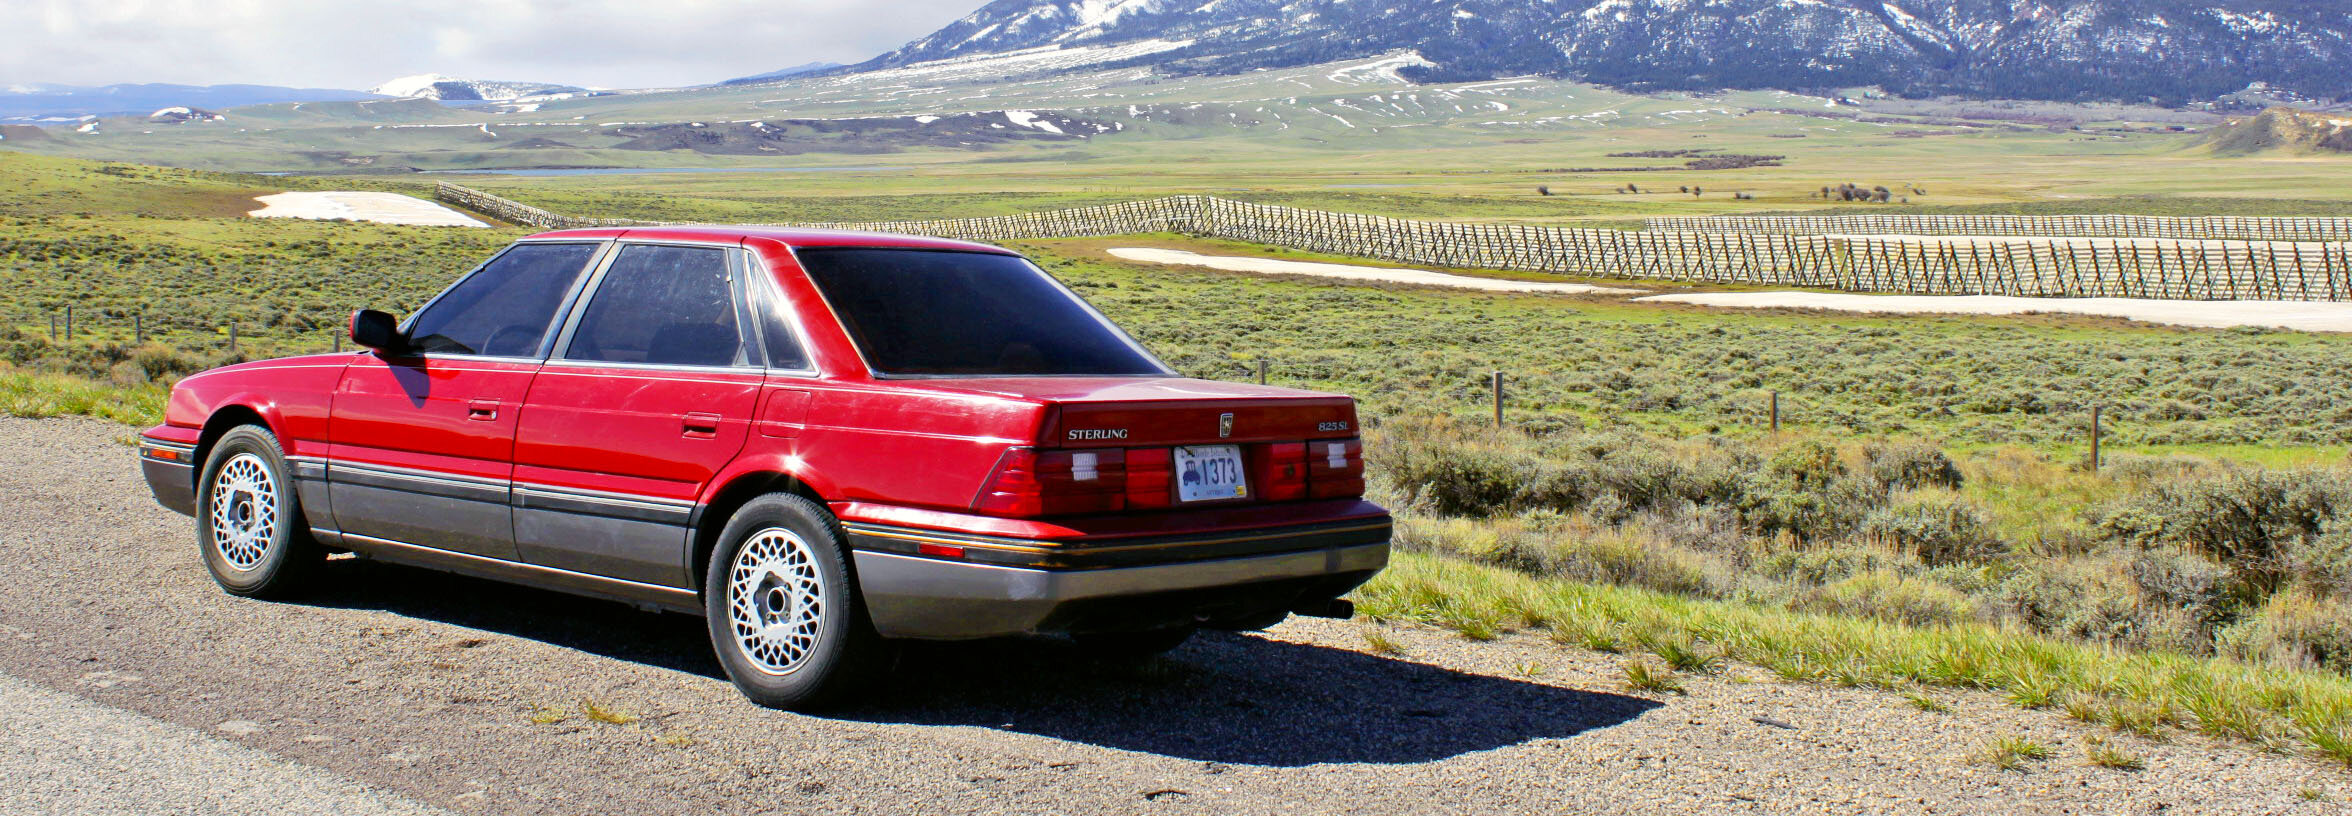 In similar fashion to the things we get up to at Practical Classics and with additional inspiration from road trip nutter Jim Magill (Fiat Panda in the Sahara, anyone?) our friends Chris Mercon and Tim Wade Jr sourced a rare US-spec Sterling (basically a Rover 800) and picked it up from a small dusty town in Idaho. The mission? To hand the keys to our Deputy Editor James Walshe, who would bring it back to Cowley – and perhaps even the NEC Classic Motor Show.